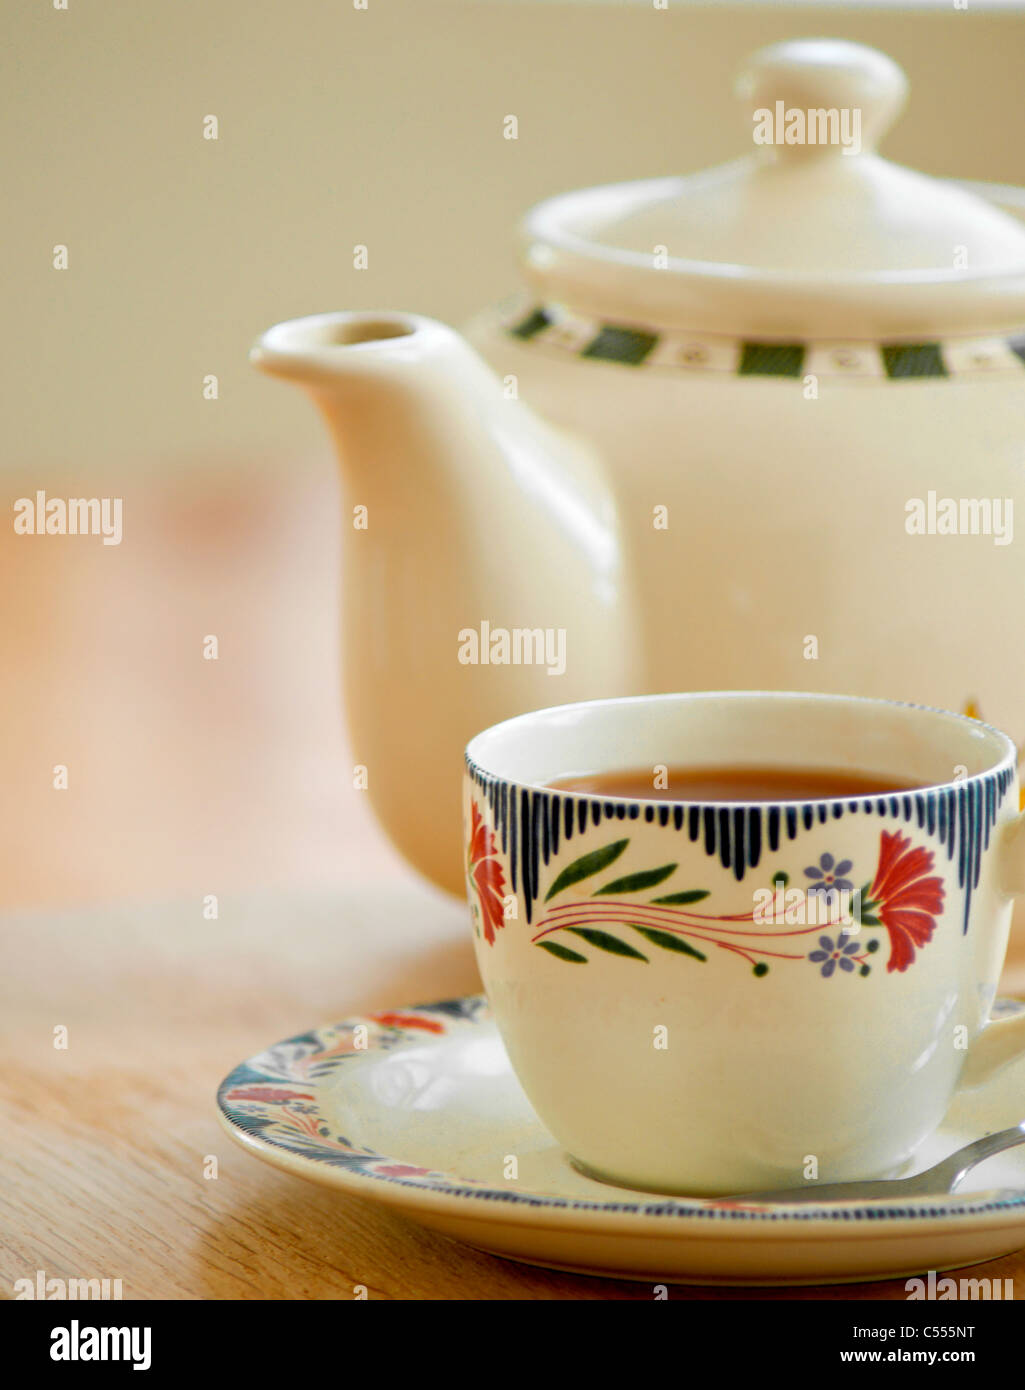 A morning cup of tea - Stock Image